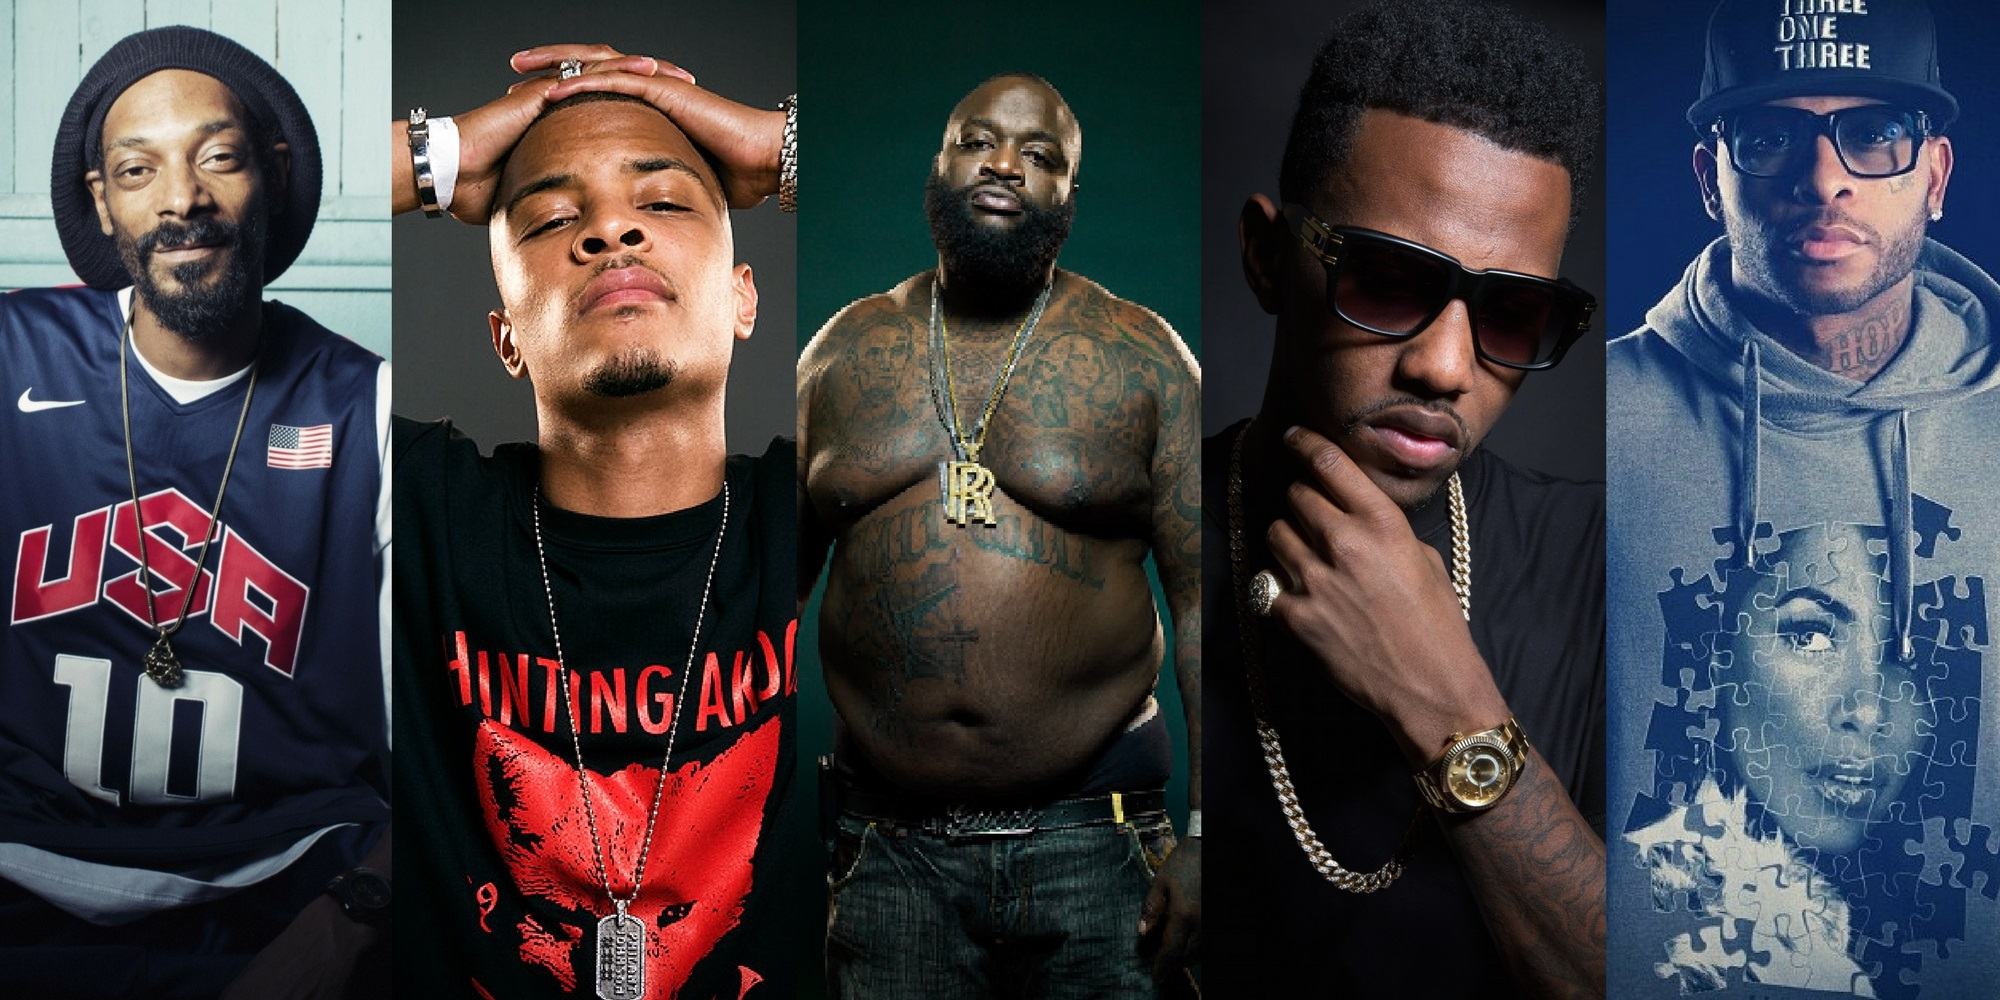 Trae Tha Truth feat. T.I., Snoop Dogg, Royce Da 5'9, E-40, Rick Ross, Fabolous & more – I'm On 3.0 (Video)